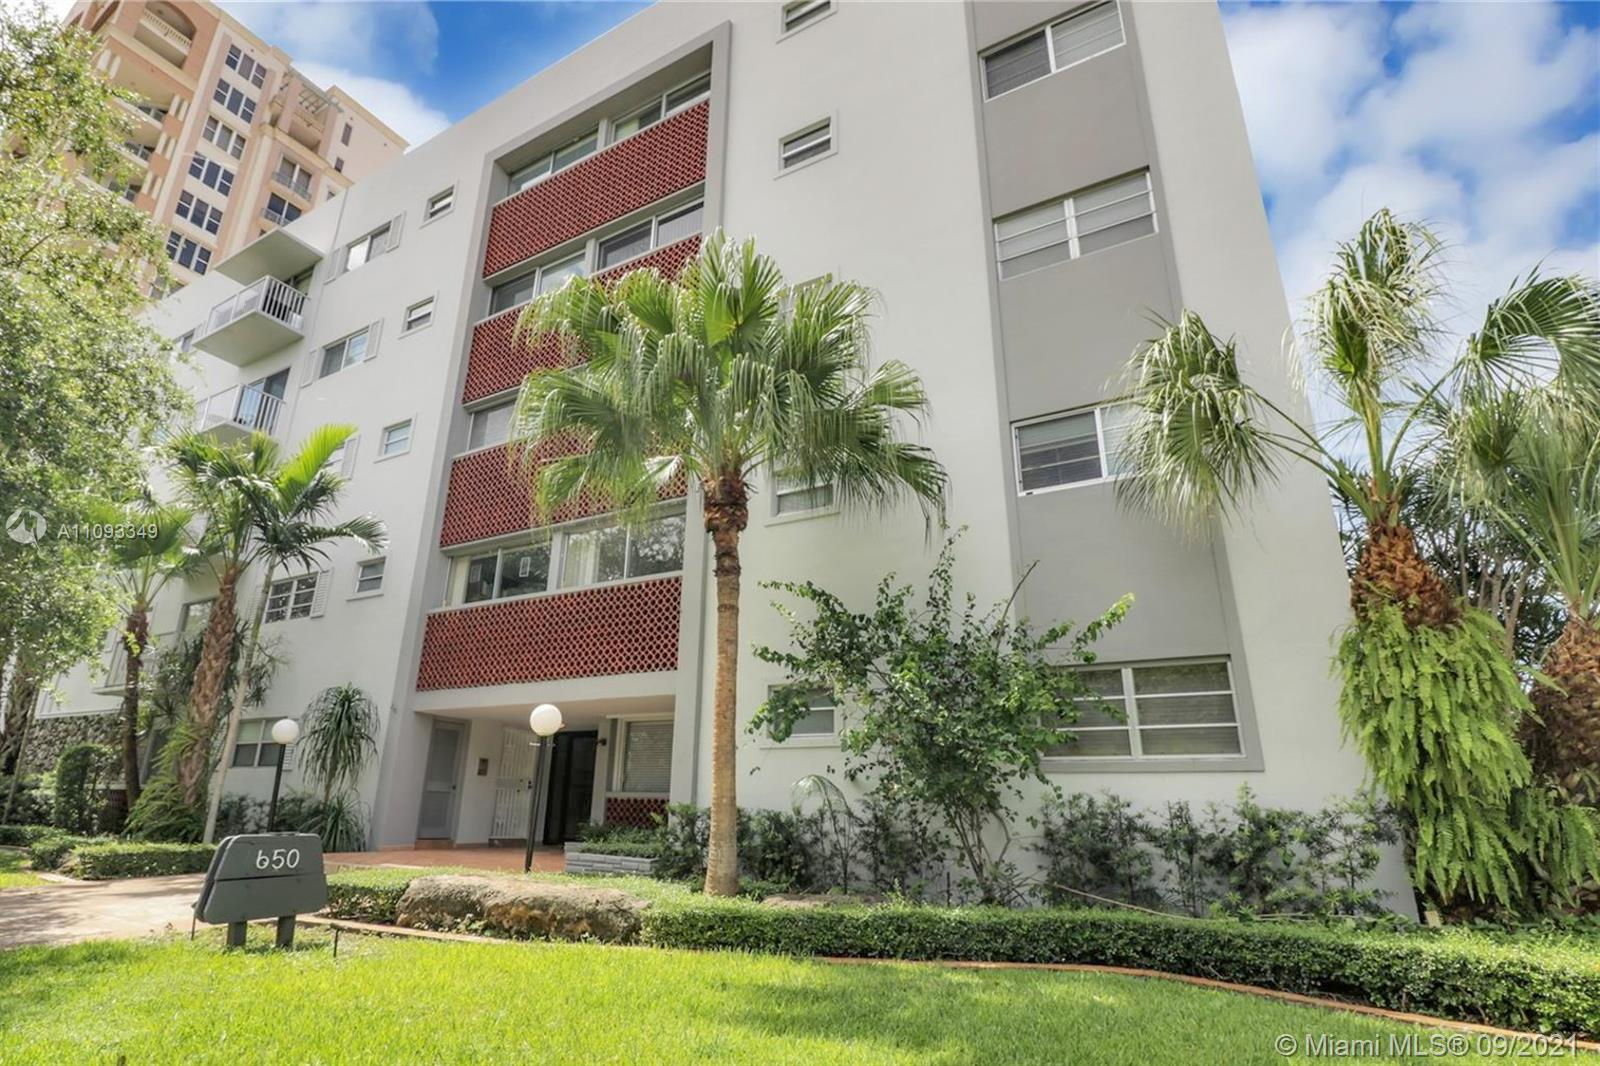 Your opportunity to own in a boutique, 5-story building along Coral Way just west of downtown Gables.  Units rarely on the market.  Maint. fee is under $500 a month and there are reserves for a new elevator system. Assigned parking. This unit has been lived in for over 25 years and is mostly original/not updated, but priced accordingly, so don't look for new.  The Gables Way Condo overlooks the Granada Golf Course and is west of Segovia/ east of Granada Blvd.  This unit is on the second floor and faces the pool.  It has two bedrooms/two baths, plus a large living/dining area.  White kitchen cabinets.  Recently painted and light and bright with almost 870 adj.sq.ft.  Multiple offers will be reviewed with owner on Thurs, Sept. 9.  It is expected to sell well above list price but is worth it.